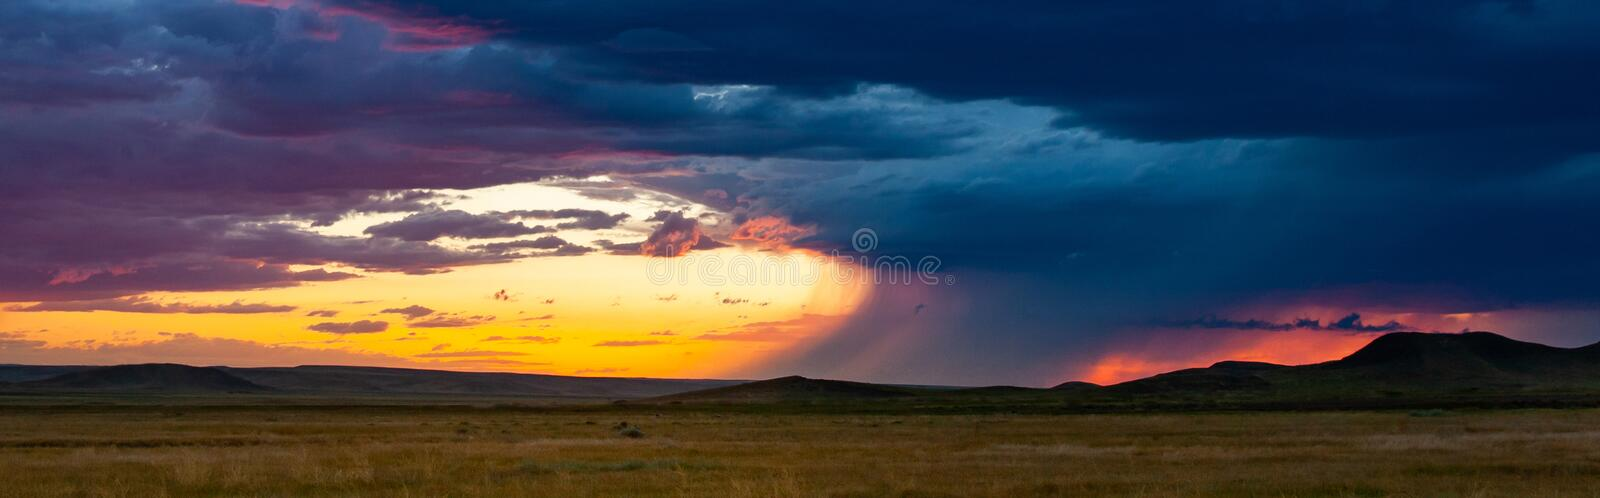 Stormy Skies over Big Sky Country stock image